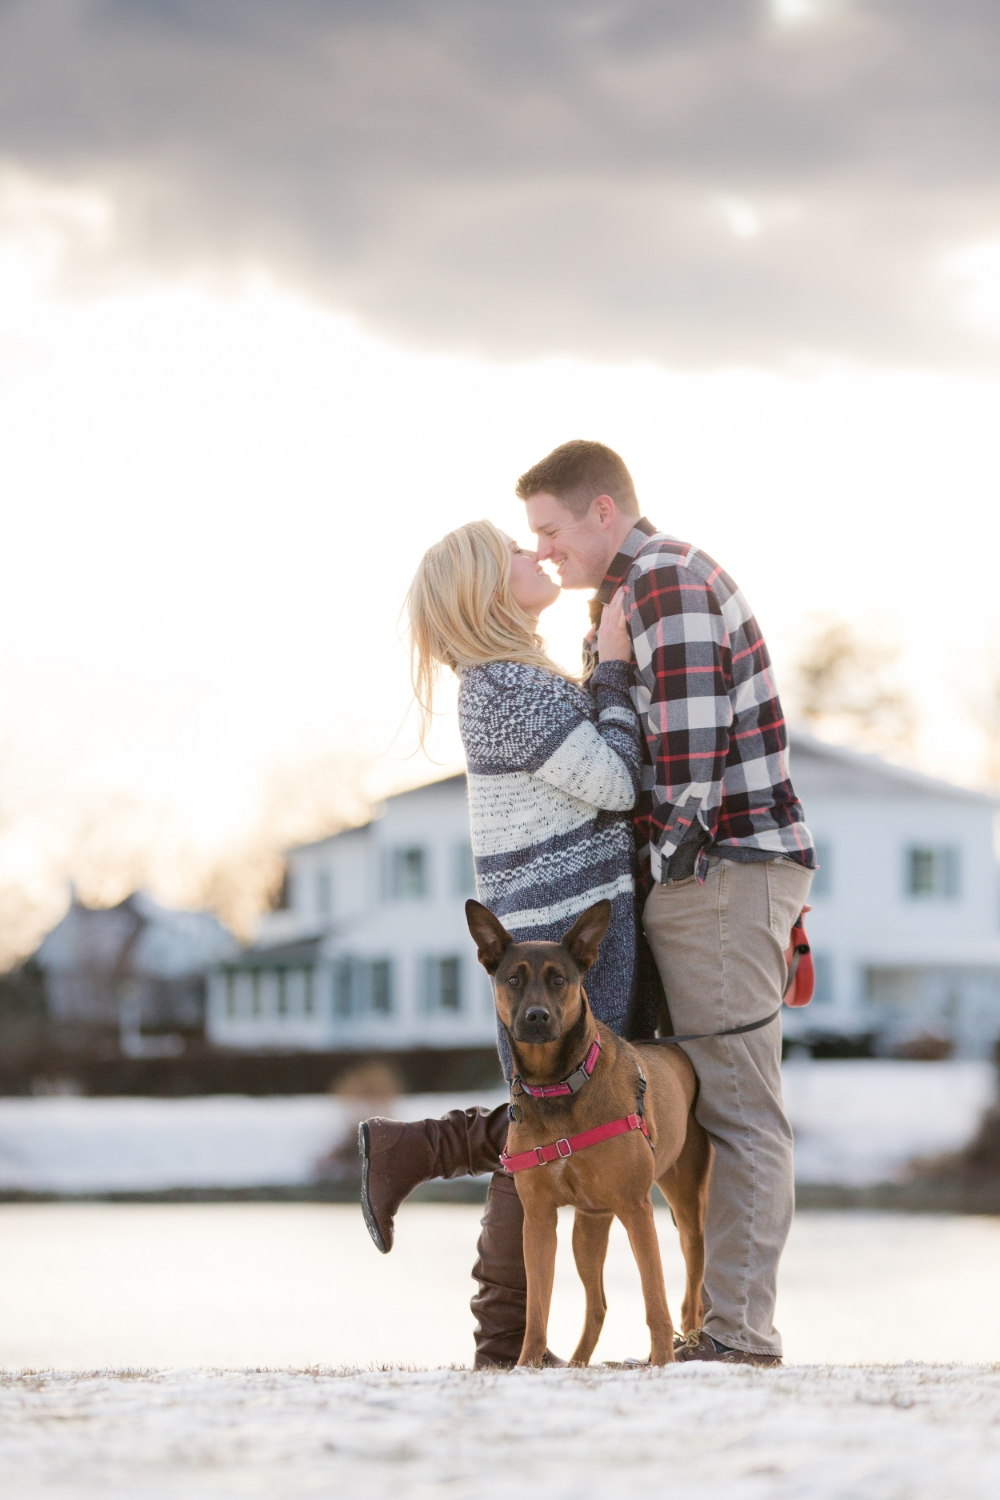 romantic engagement photo by jacnjules central nj wedding photographers in spring lake nj